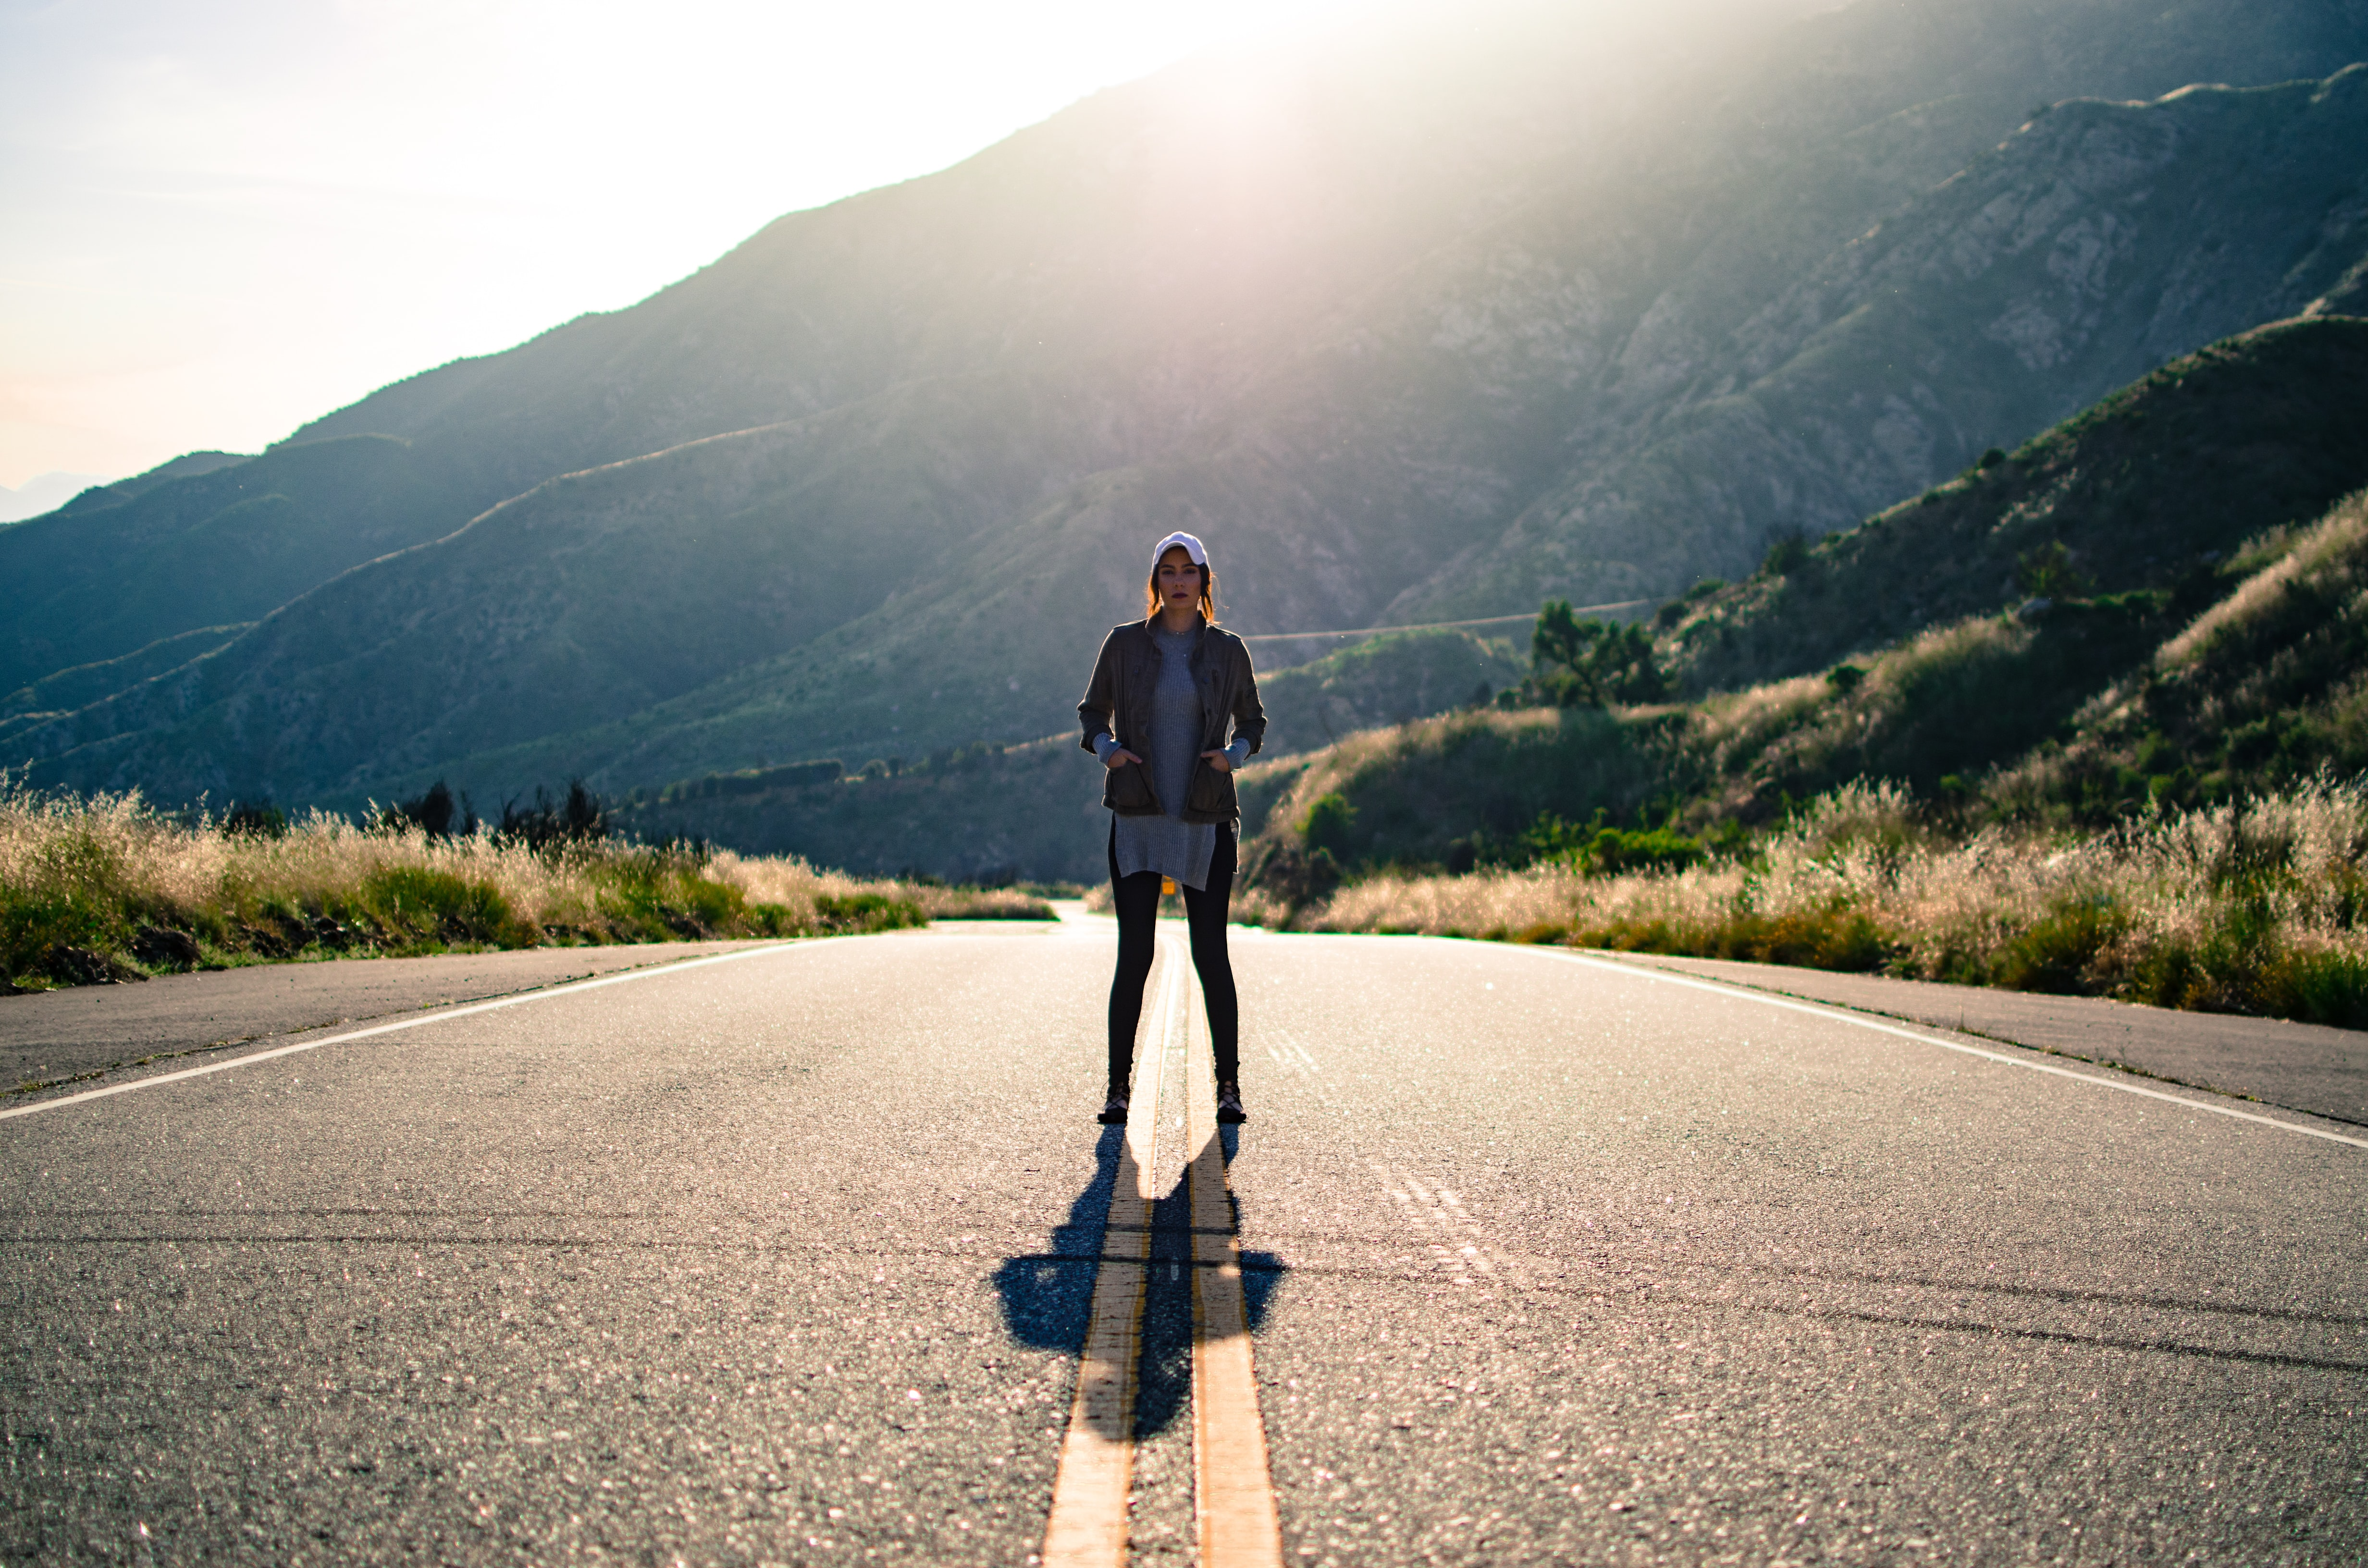 worm's eye view photography of woman standing in the middle of the road surrounded of trees and mountain